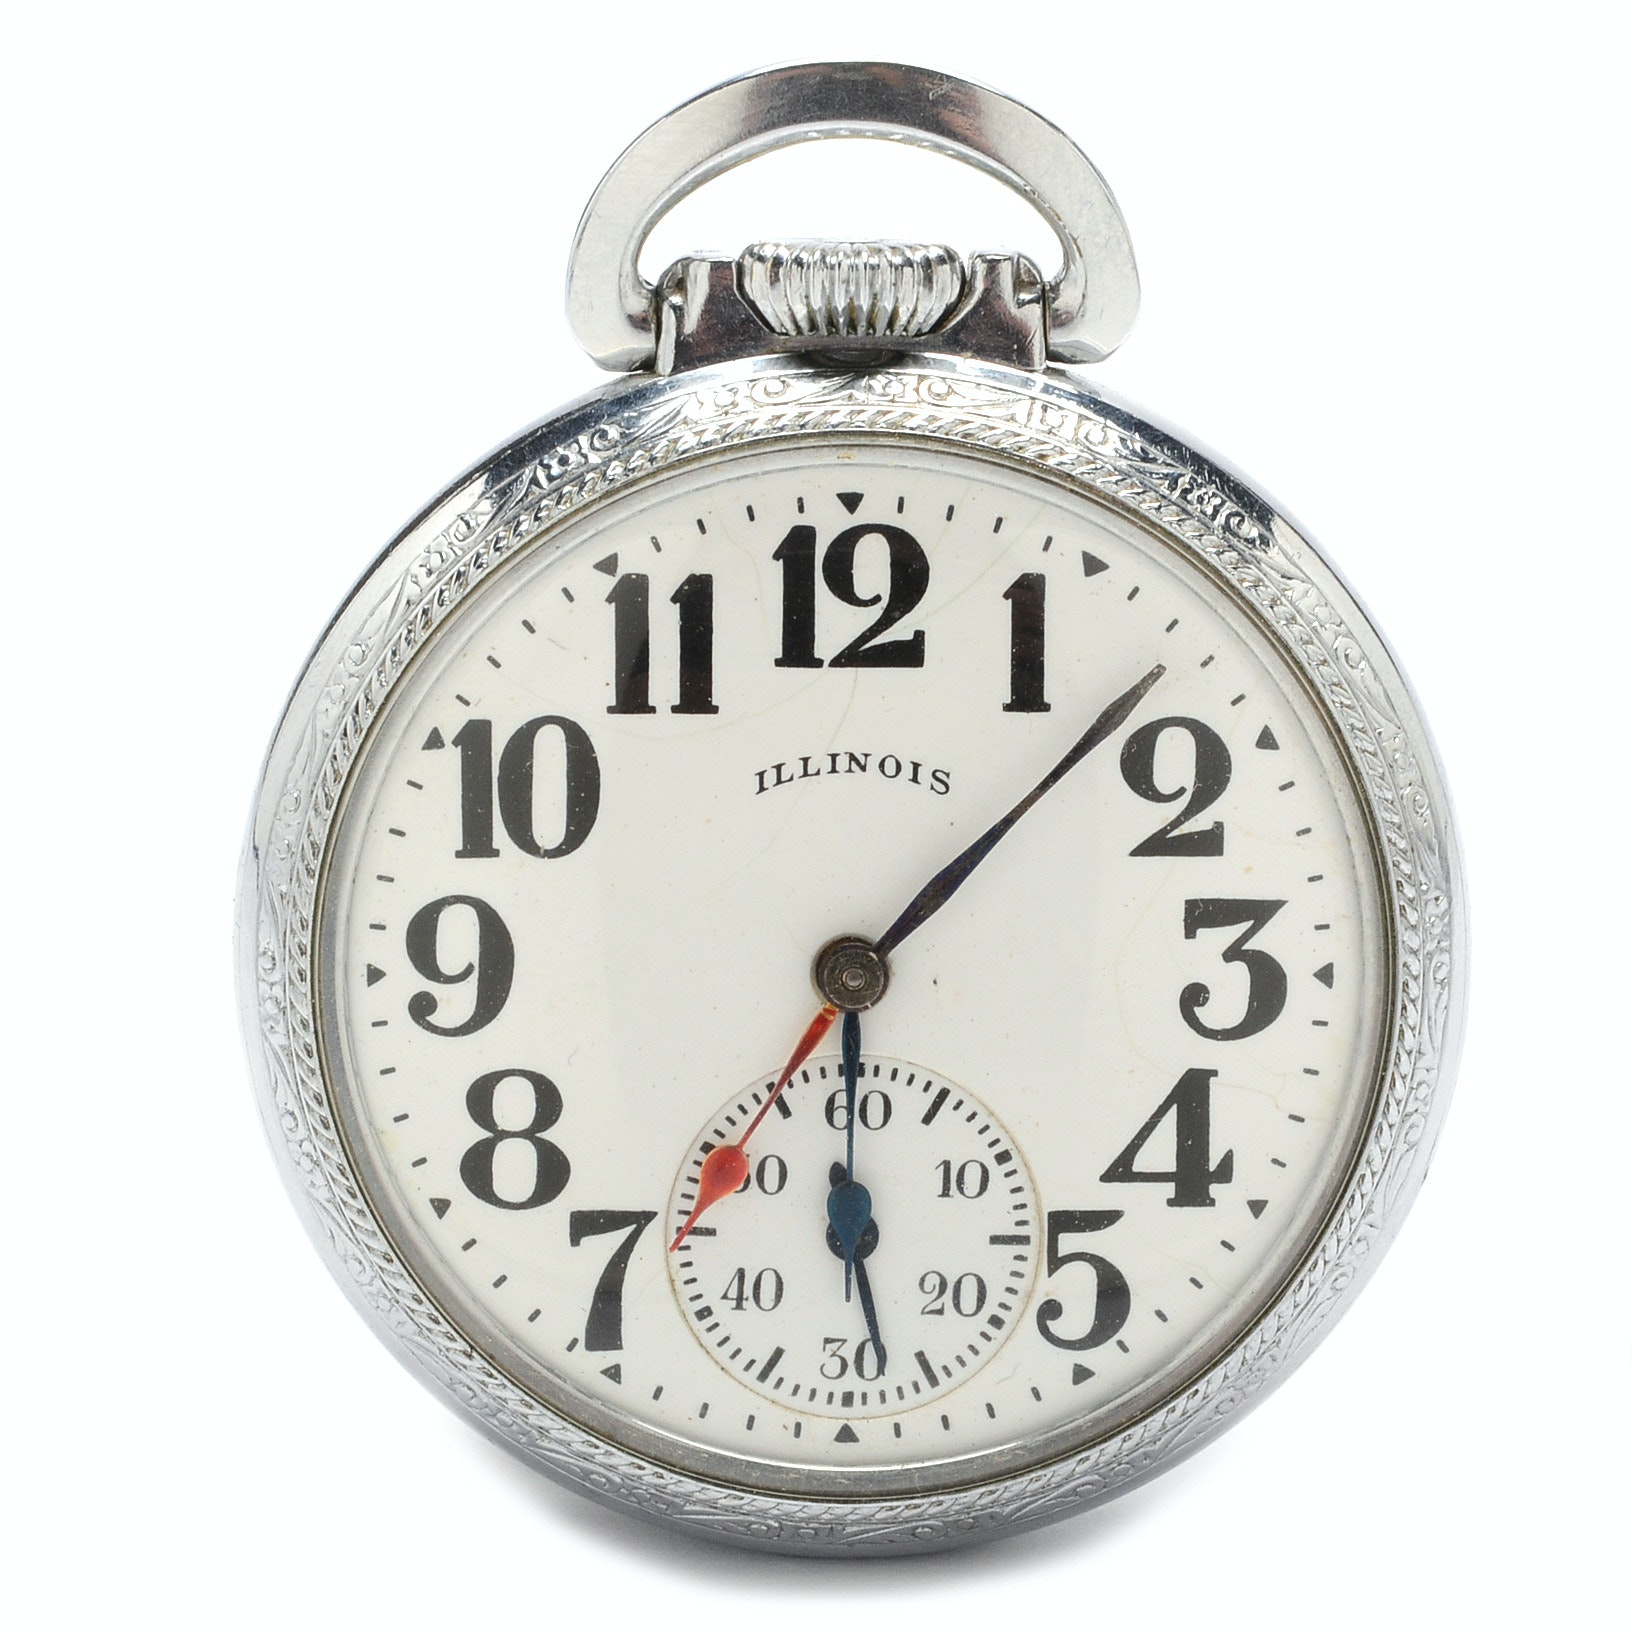 1919 Illinois Dual Time Zone Open Face Pocket Watch